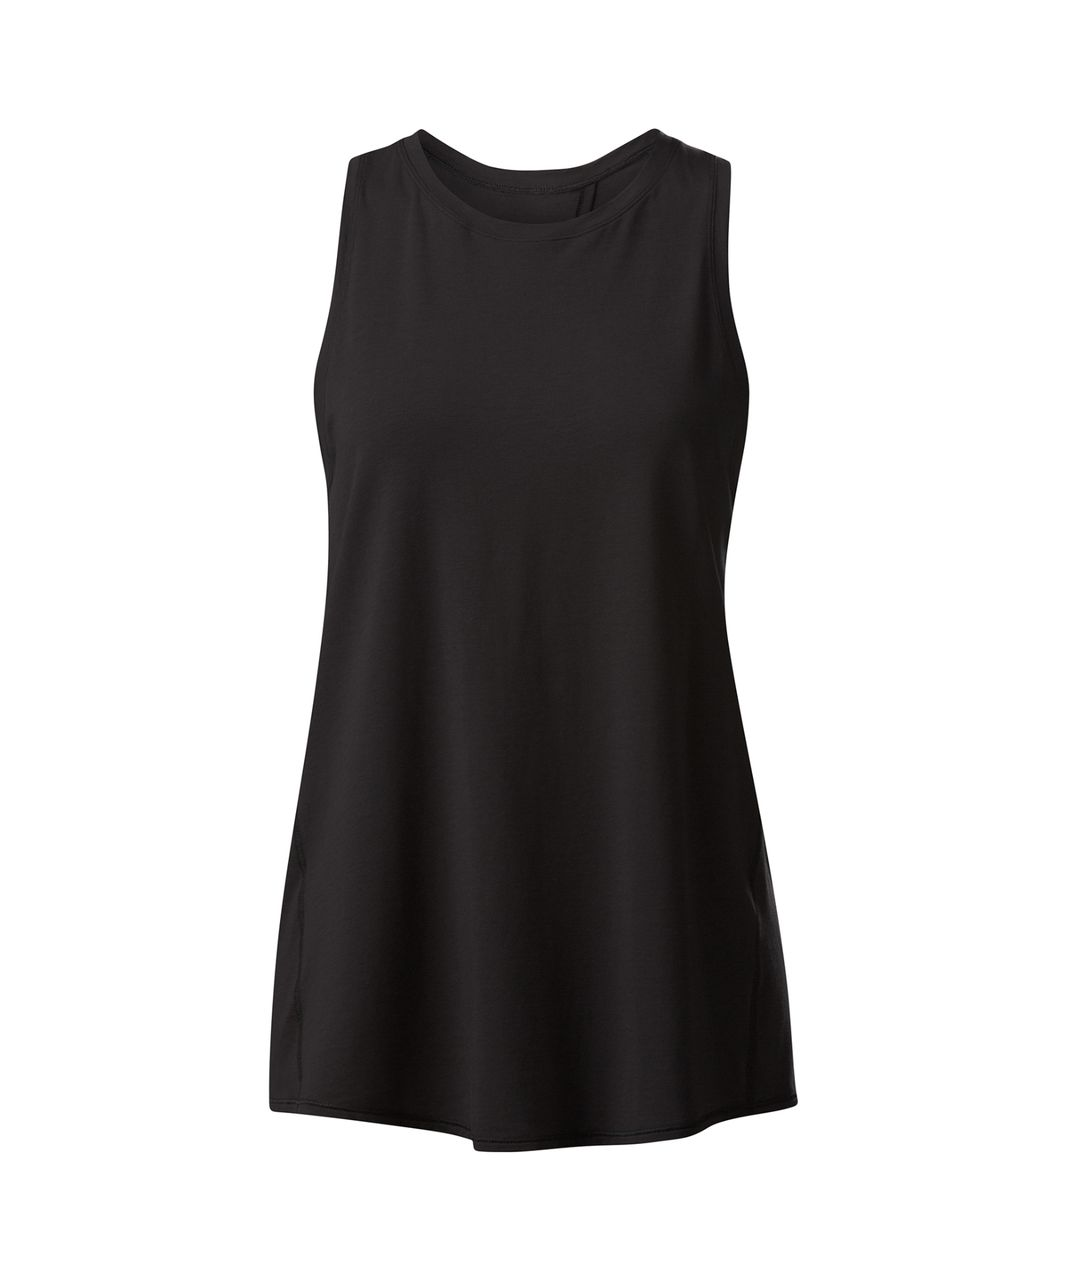 Lululemon All Tied Up Tank (Prima Cotton) - Black